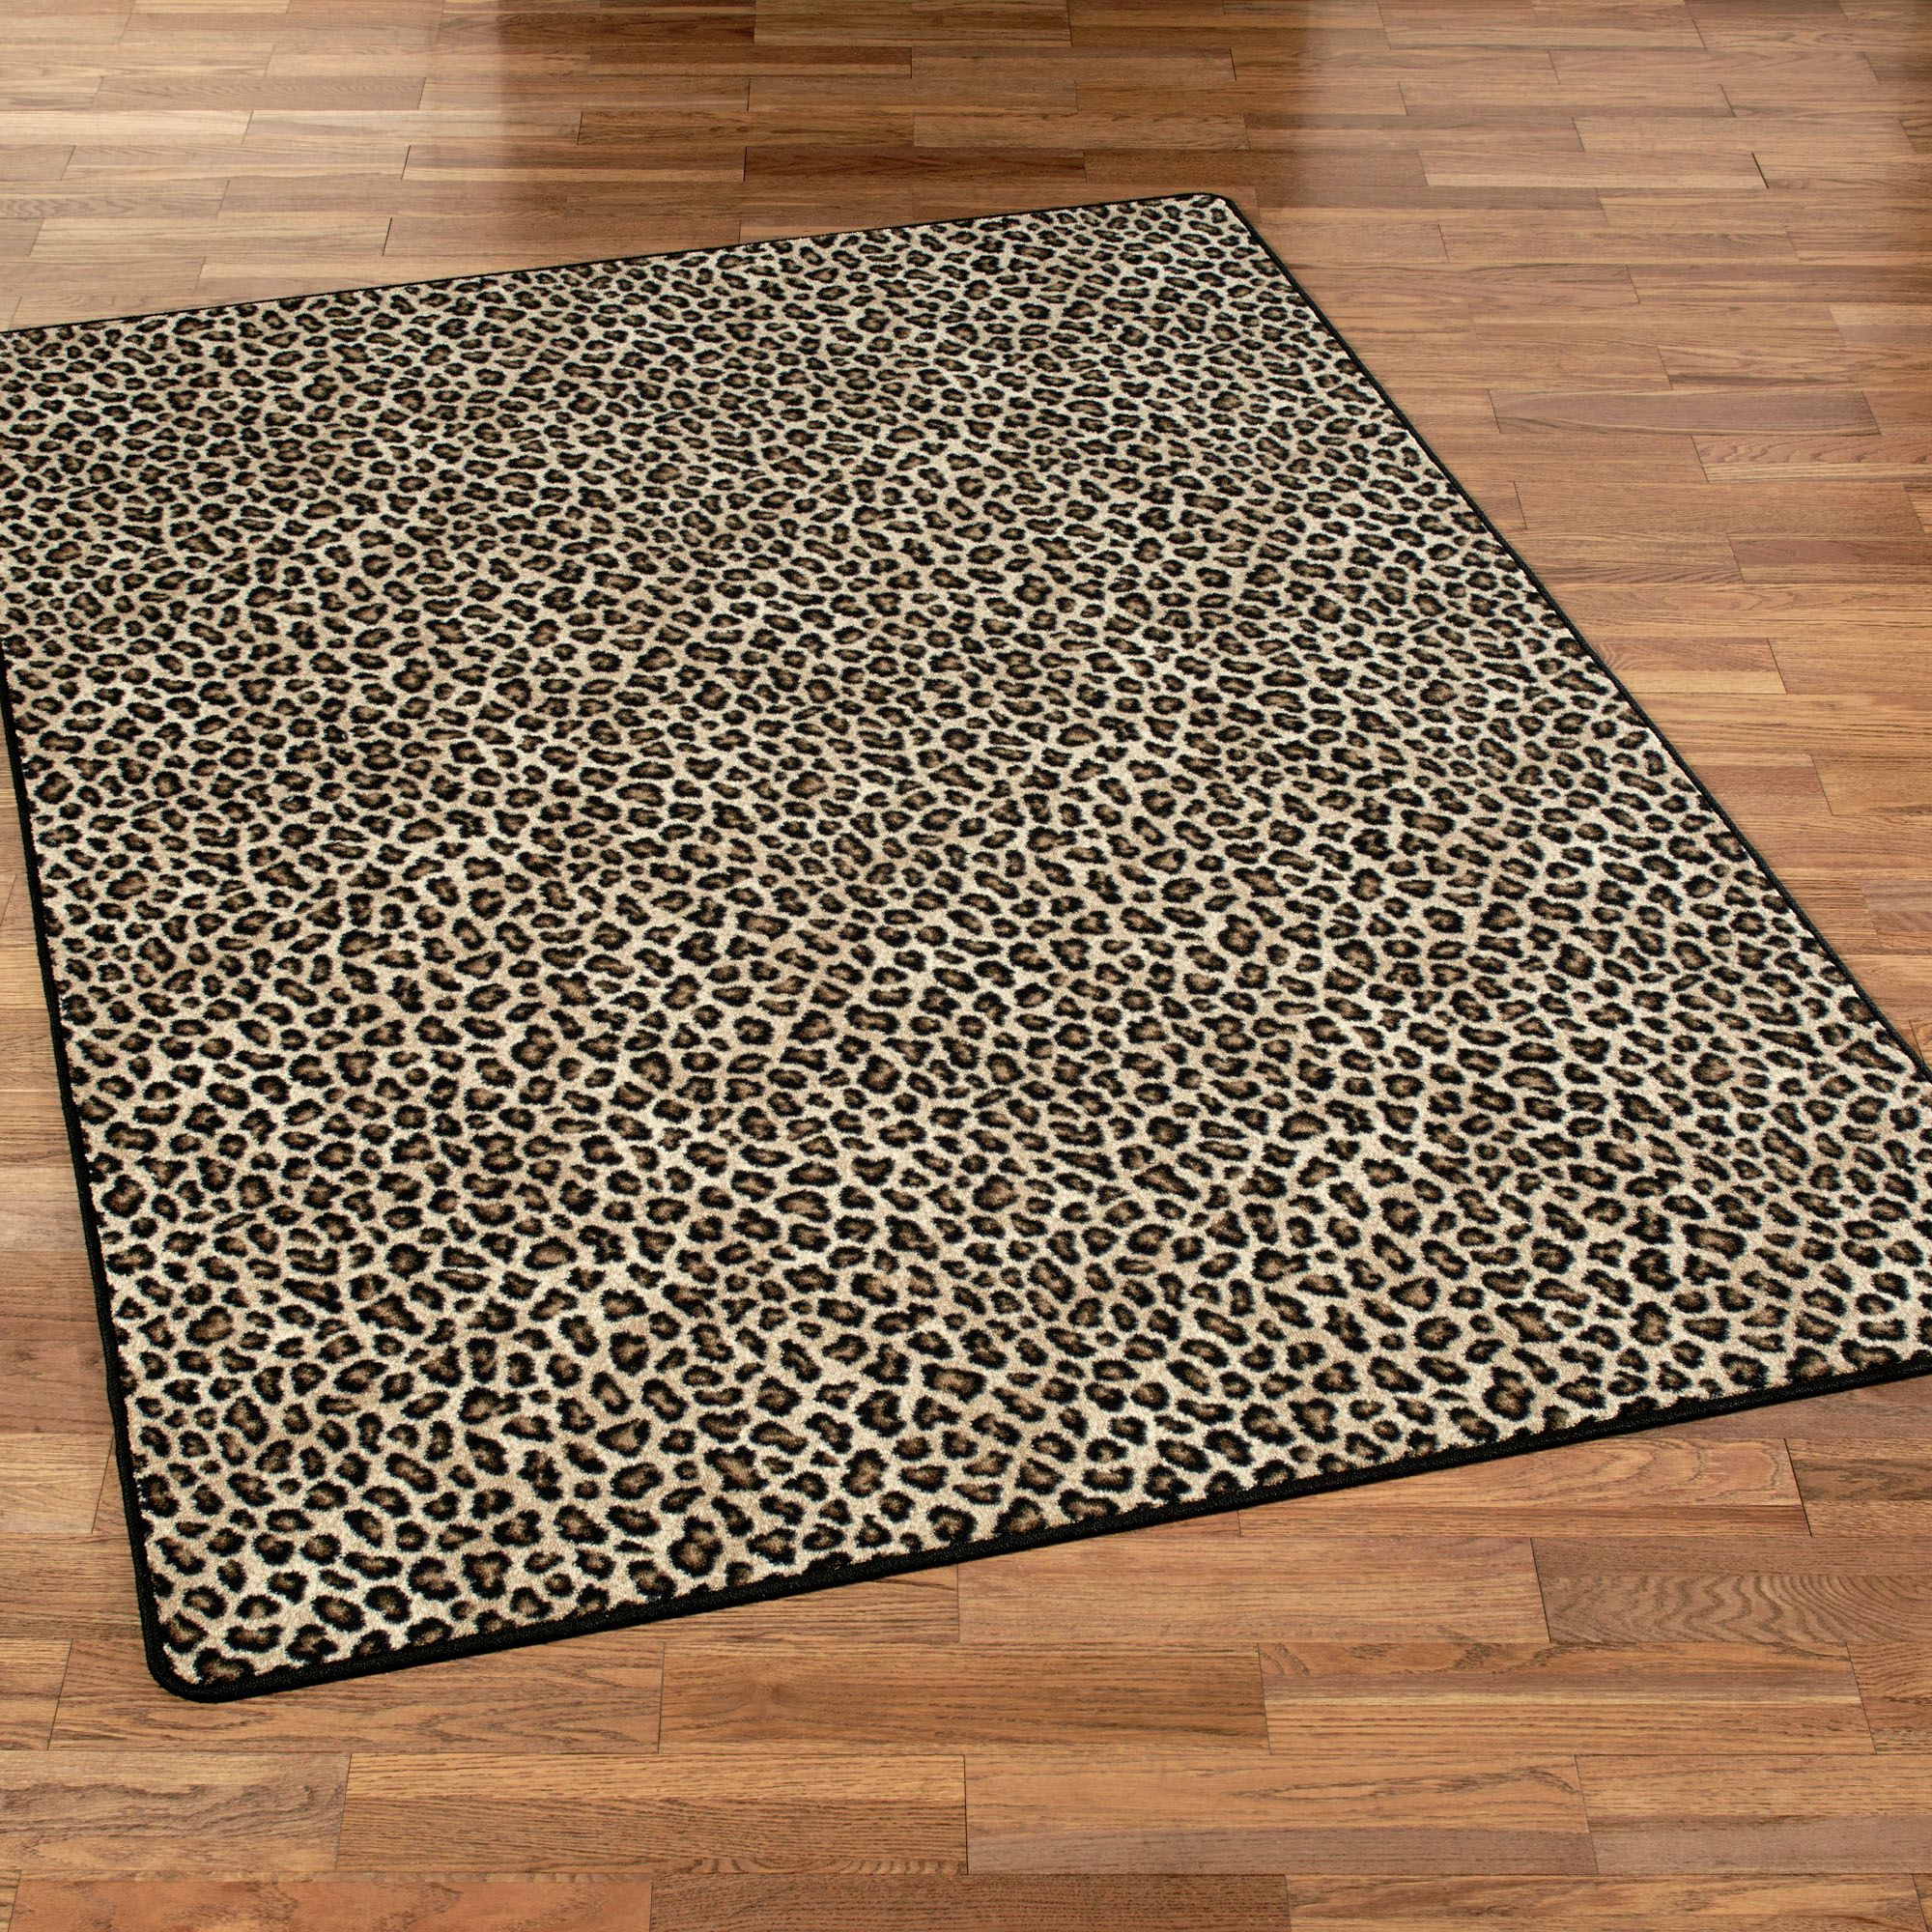 Exotic Journey Leopold Leopard Print Area Rugs